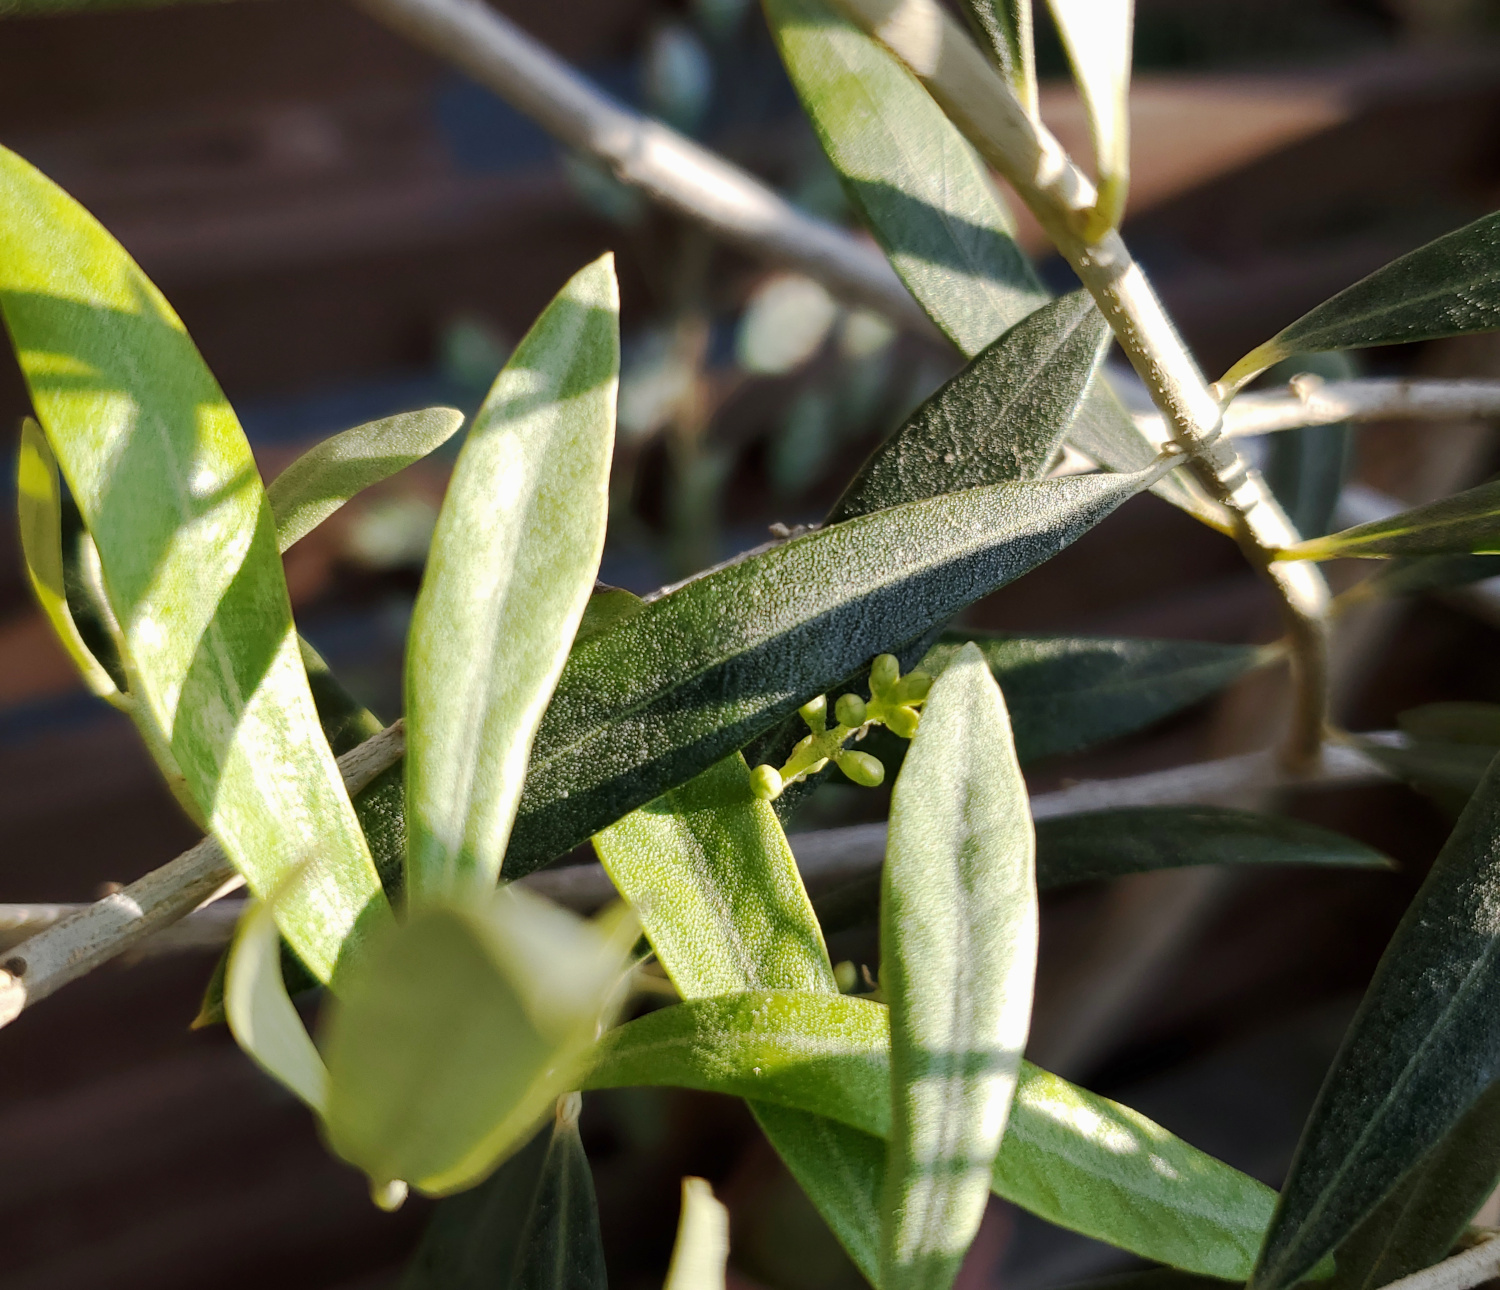 An olive putting out some flower buds at the start of spring